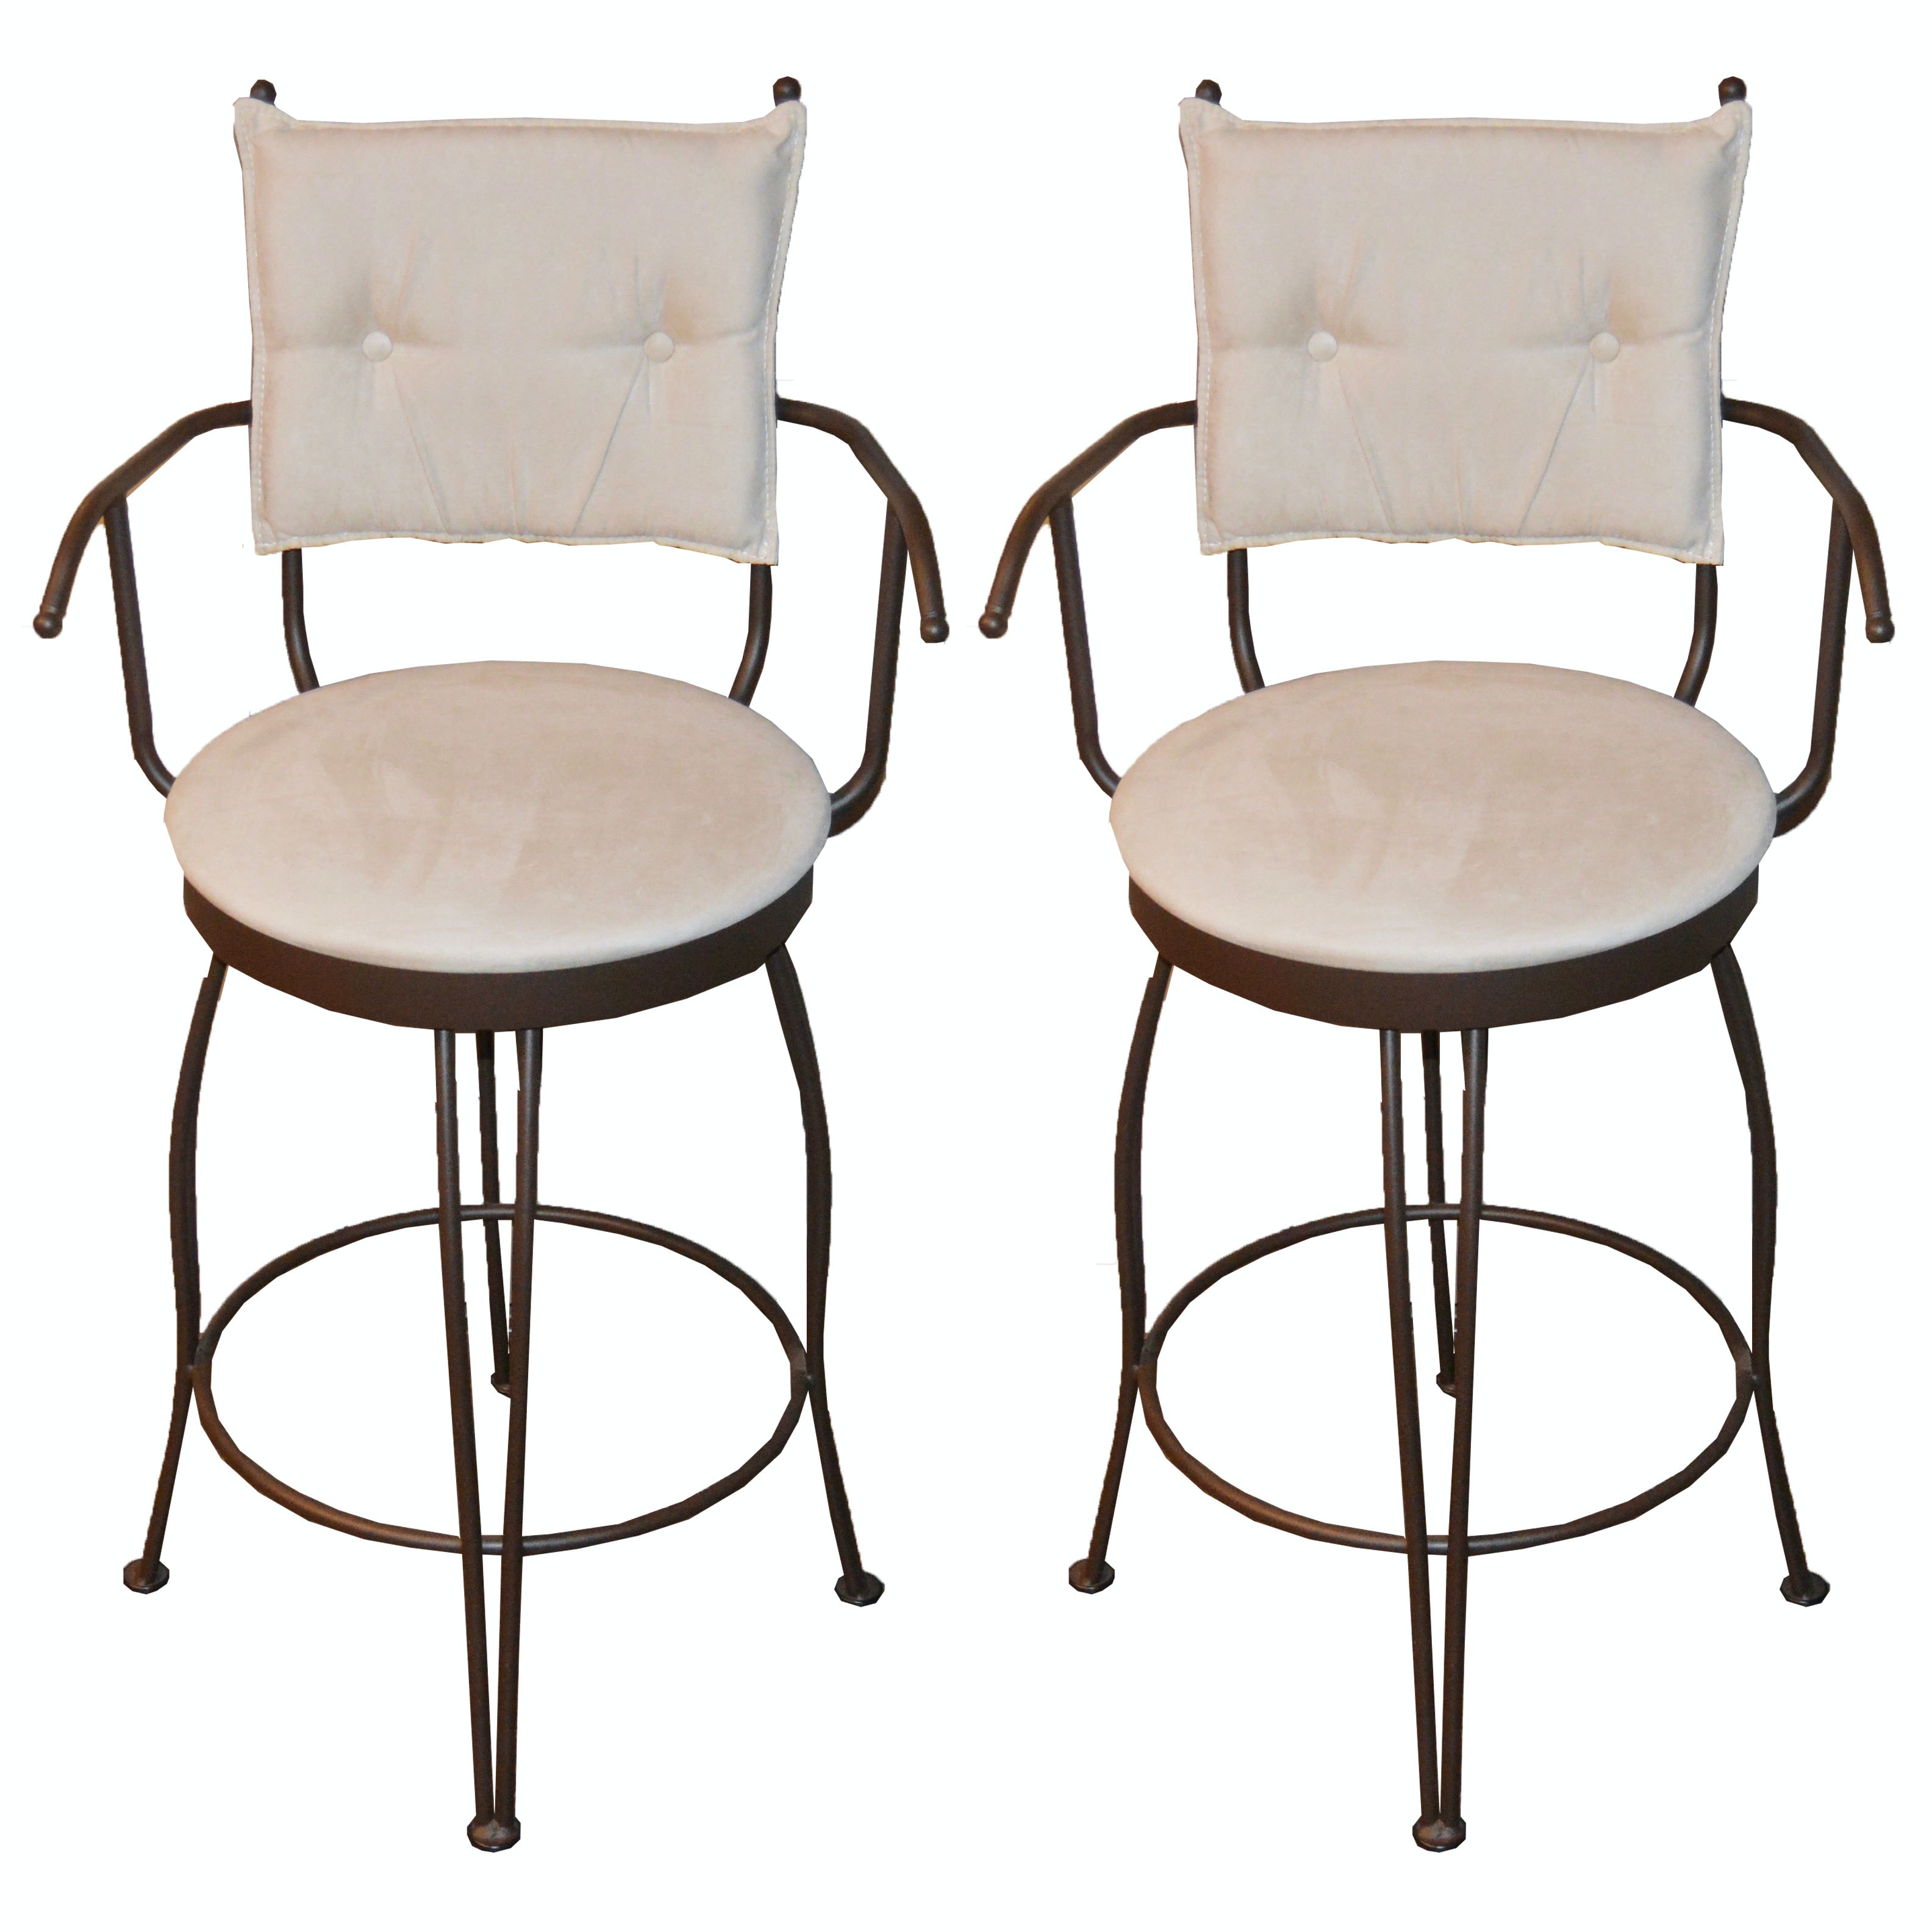 Metal Bar Stool Chairs with Padded Seating